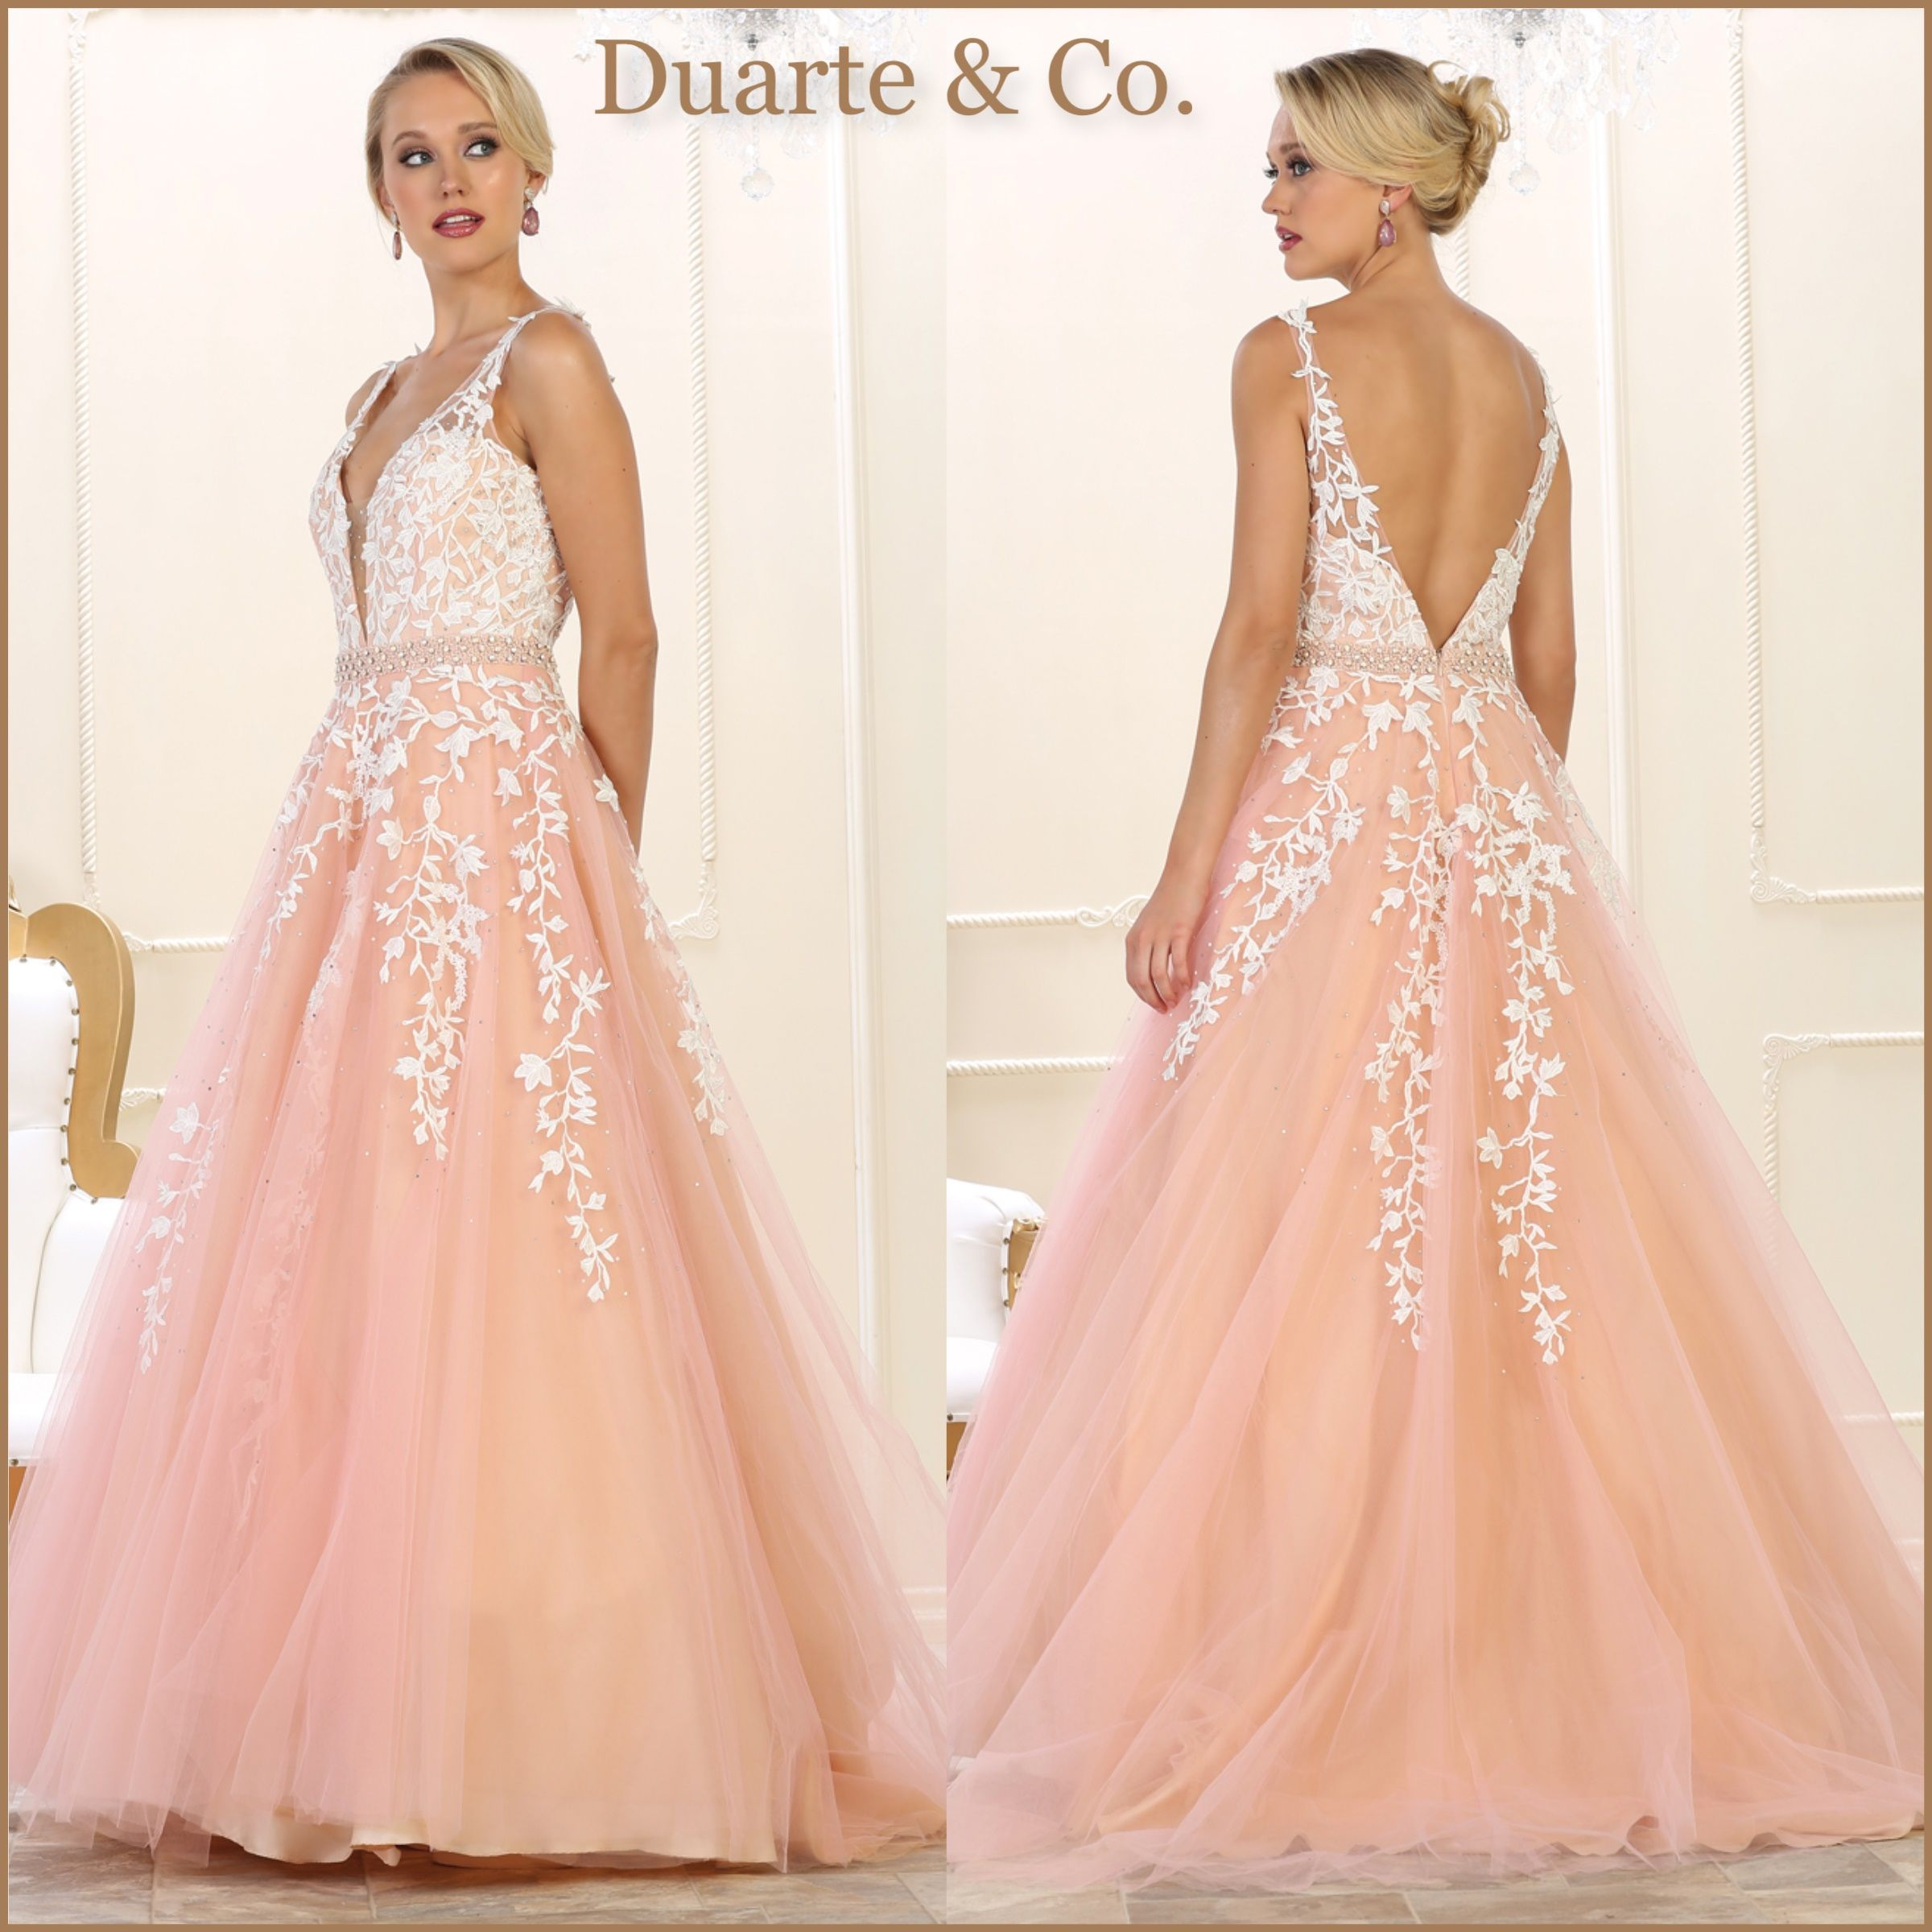 Lace Ball Gown W/Plus Sizes - RQ7613 | Prom & Party Dresses ...